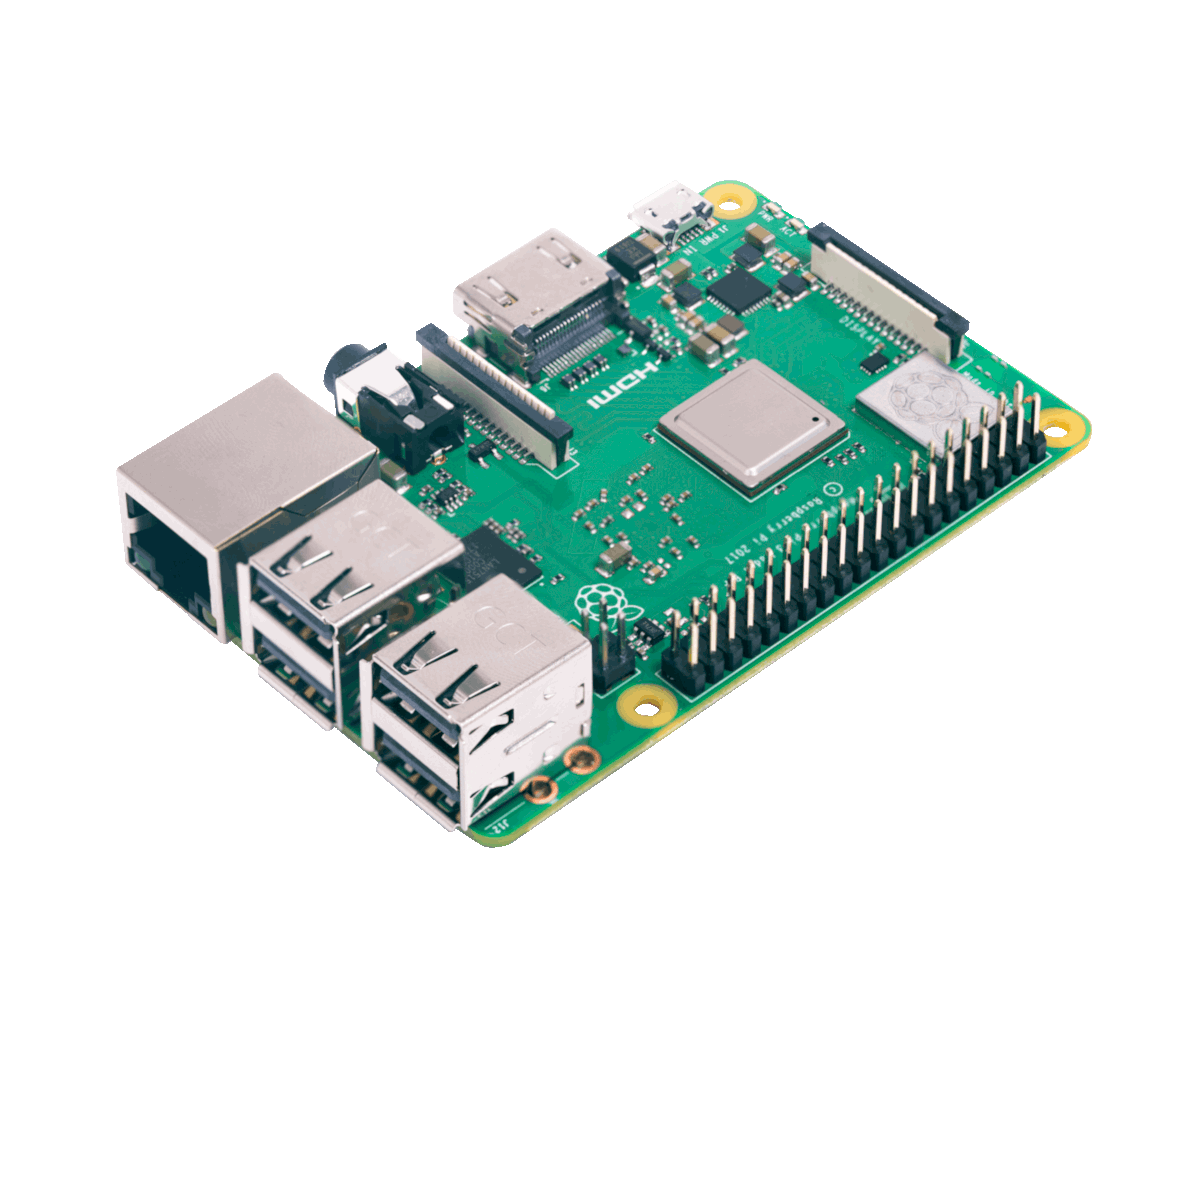 RASPBERRY_PI_3B_Plus_2